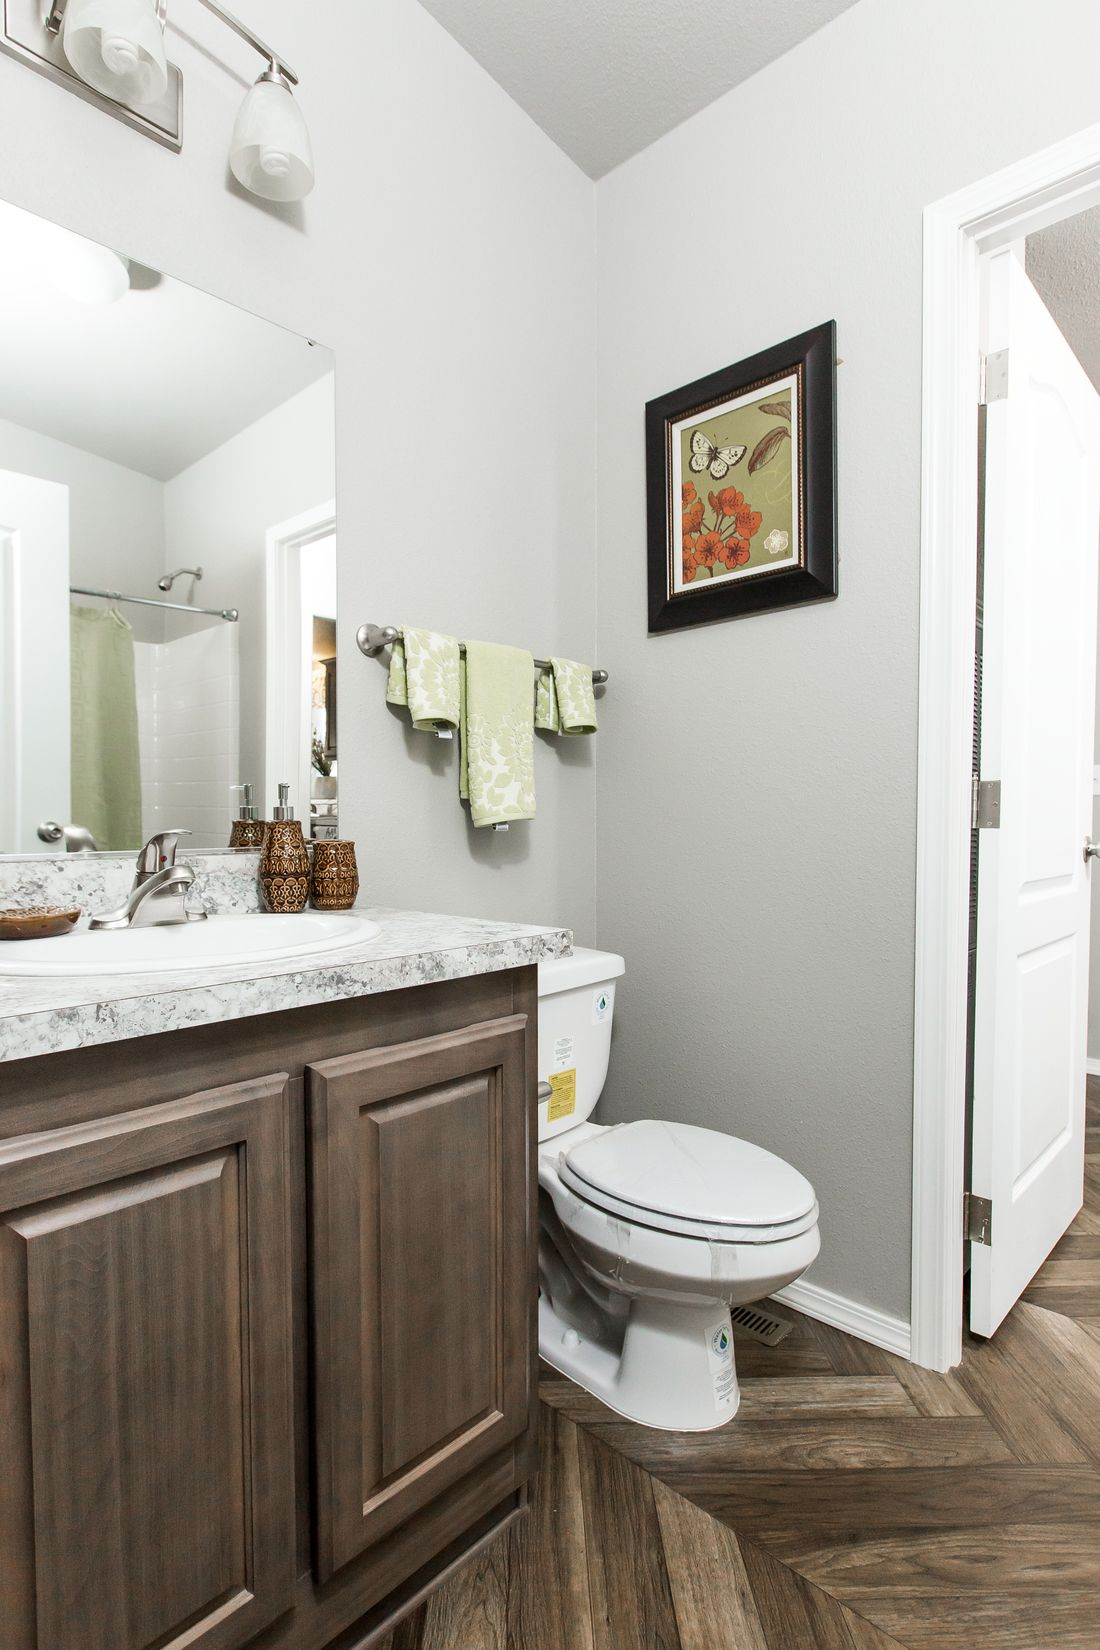 The 2017 COLUMBIA RIVER Guest Bathroom. This Manufactured Mobile Home features 3 bedrooms and 2 baths.